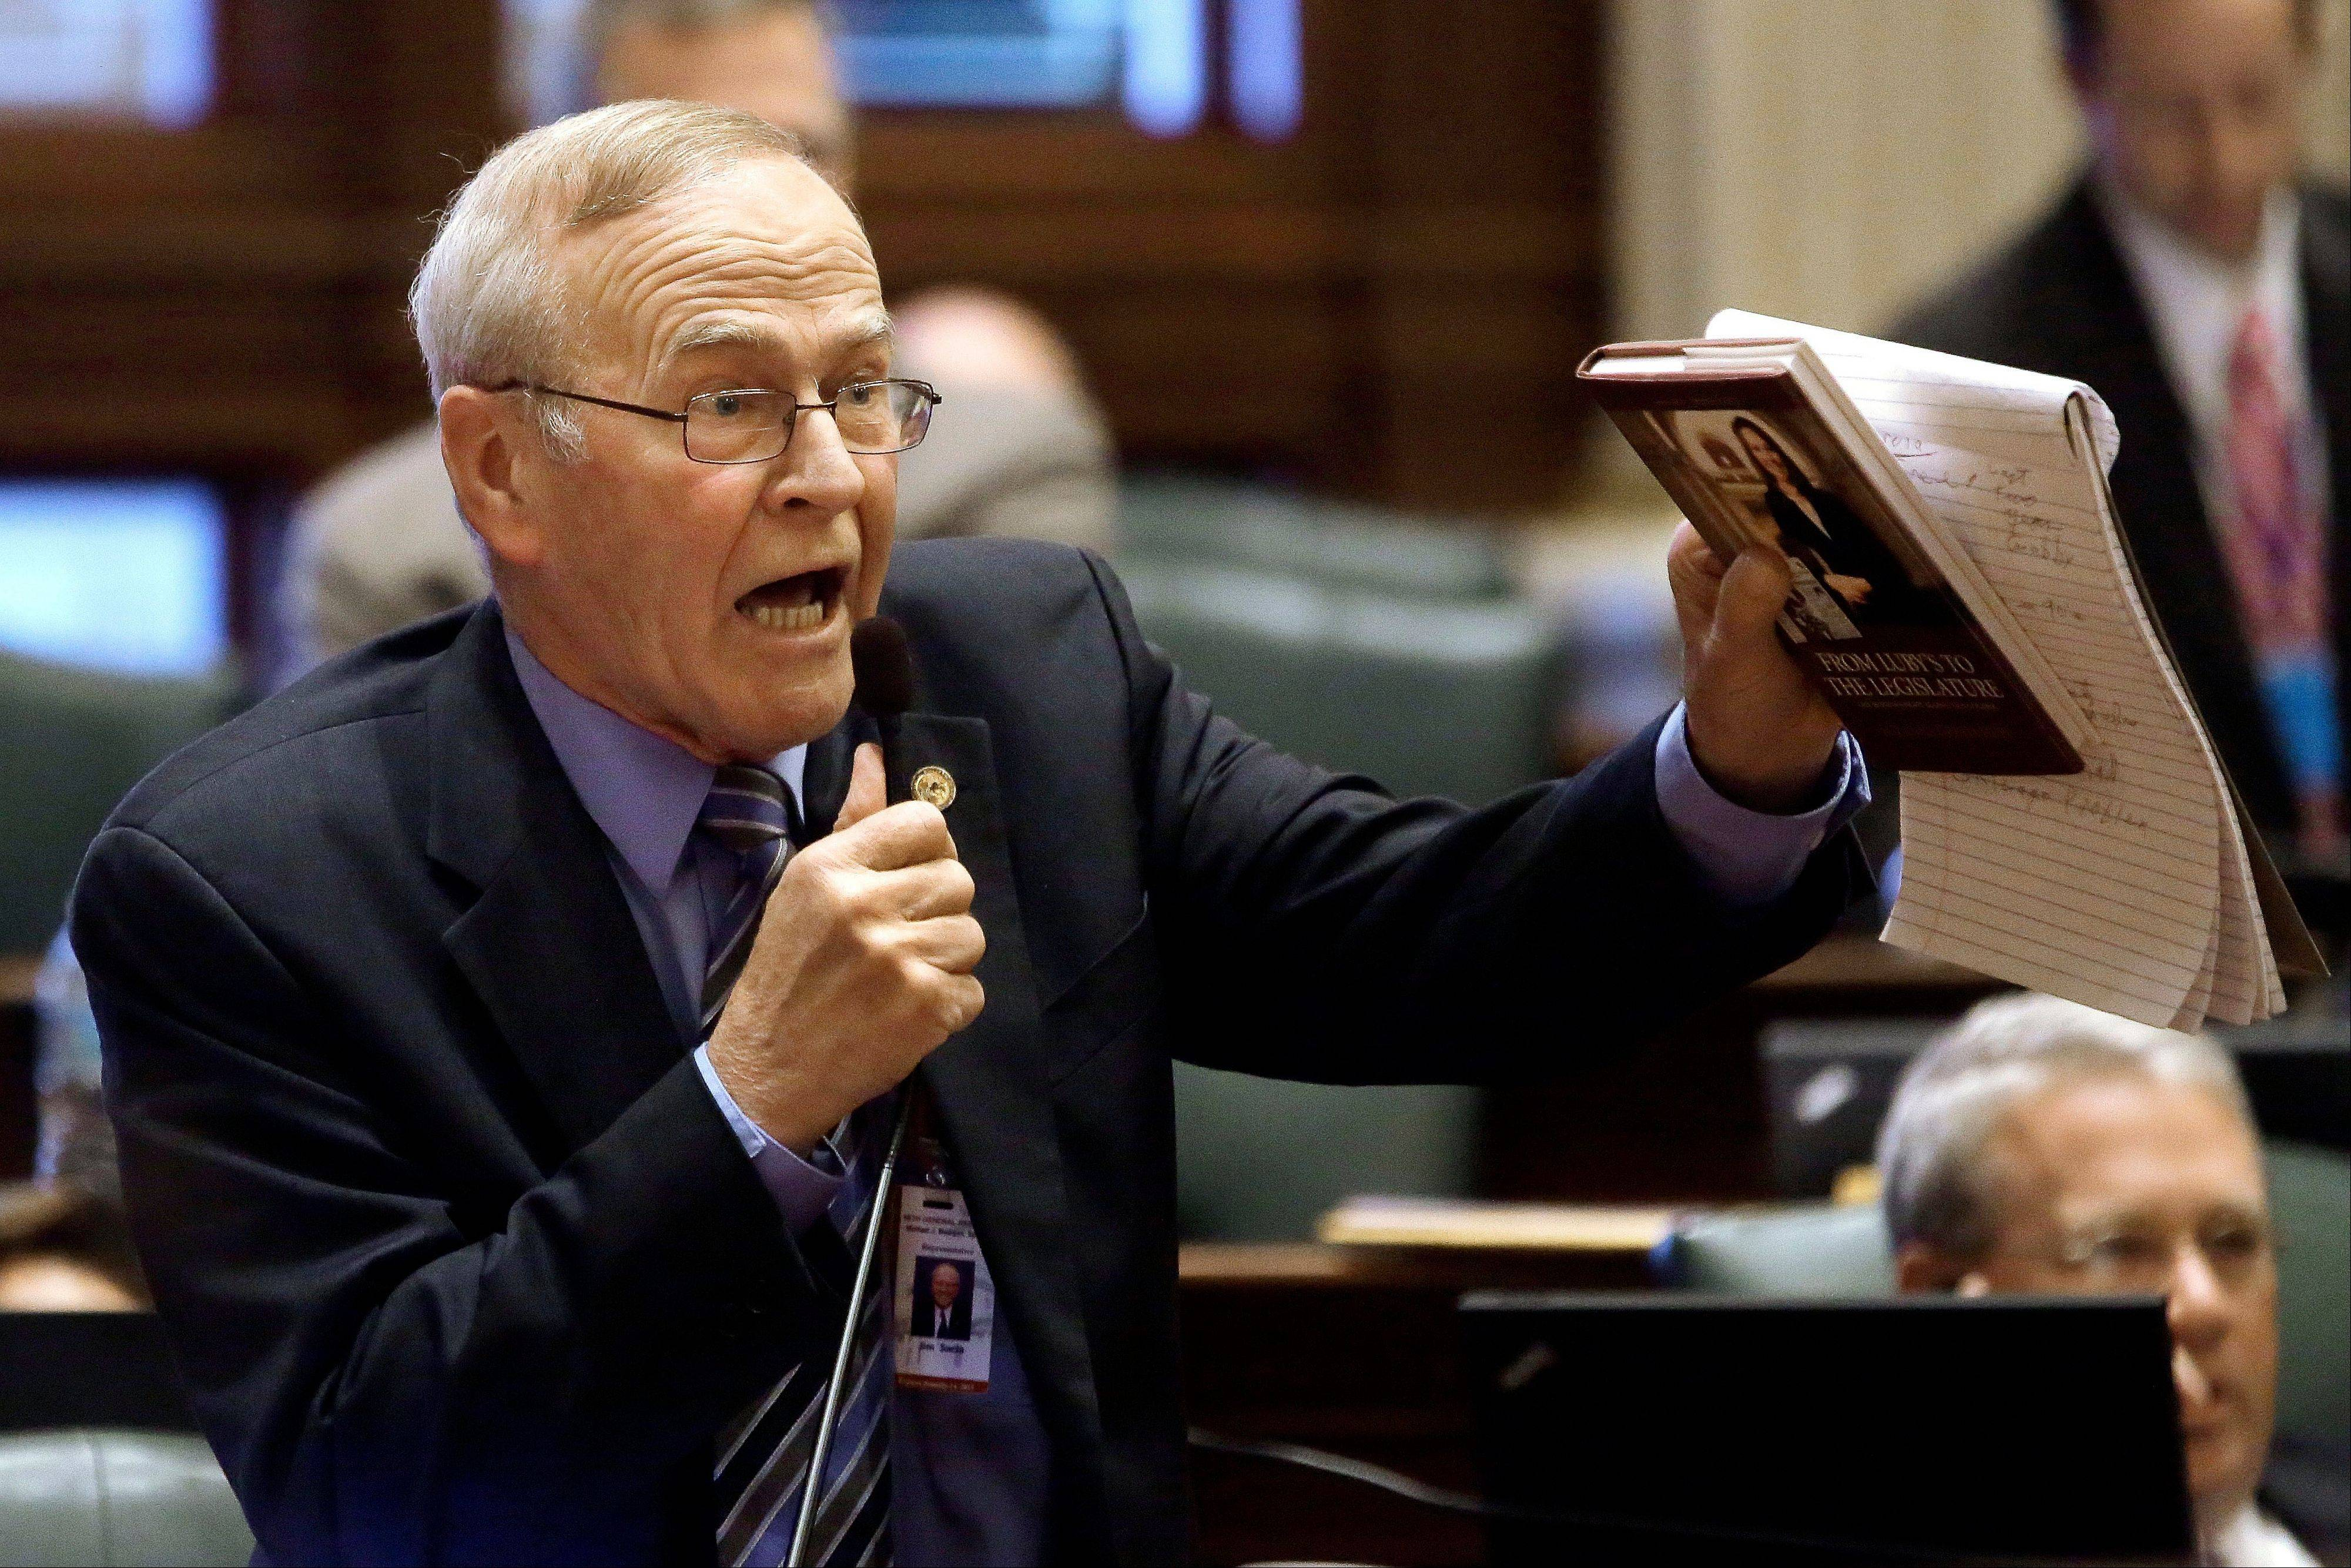 State Rep. Jim Sacia, a Pecatonica Republican, argues concealed carry legislation while on the House floor Tuesday in Springfield. He likened statewide gun limits to forced castration.